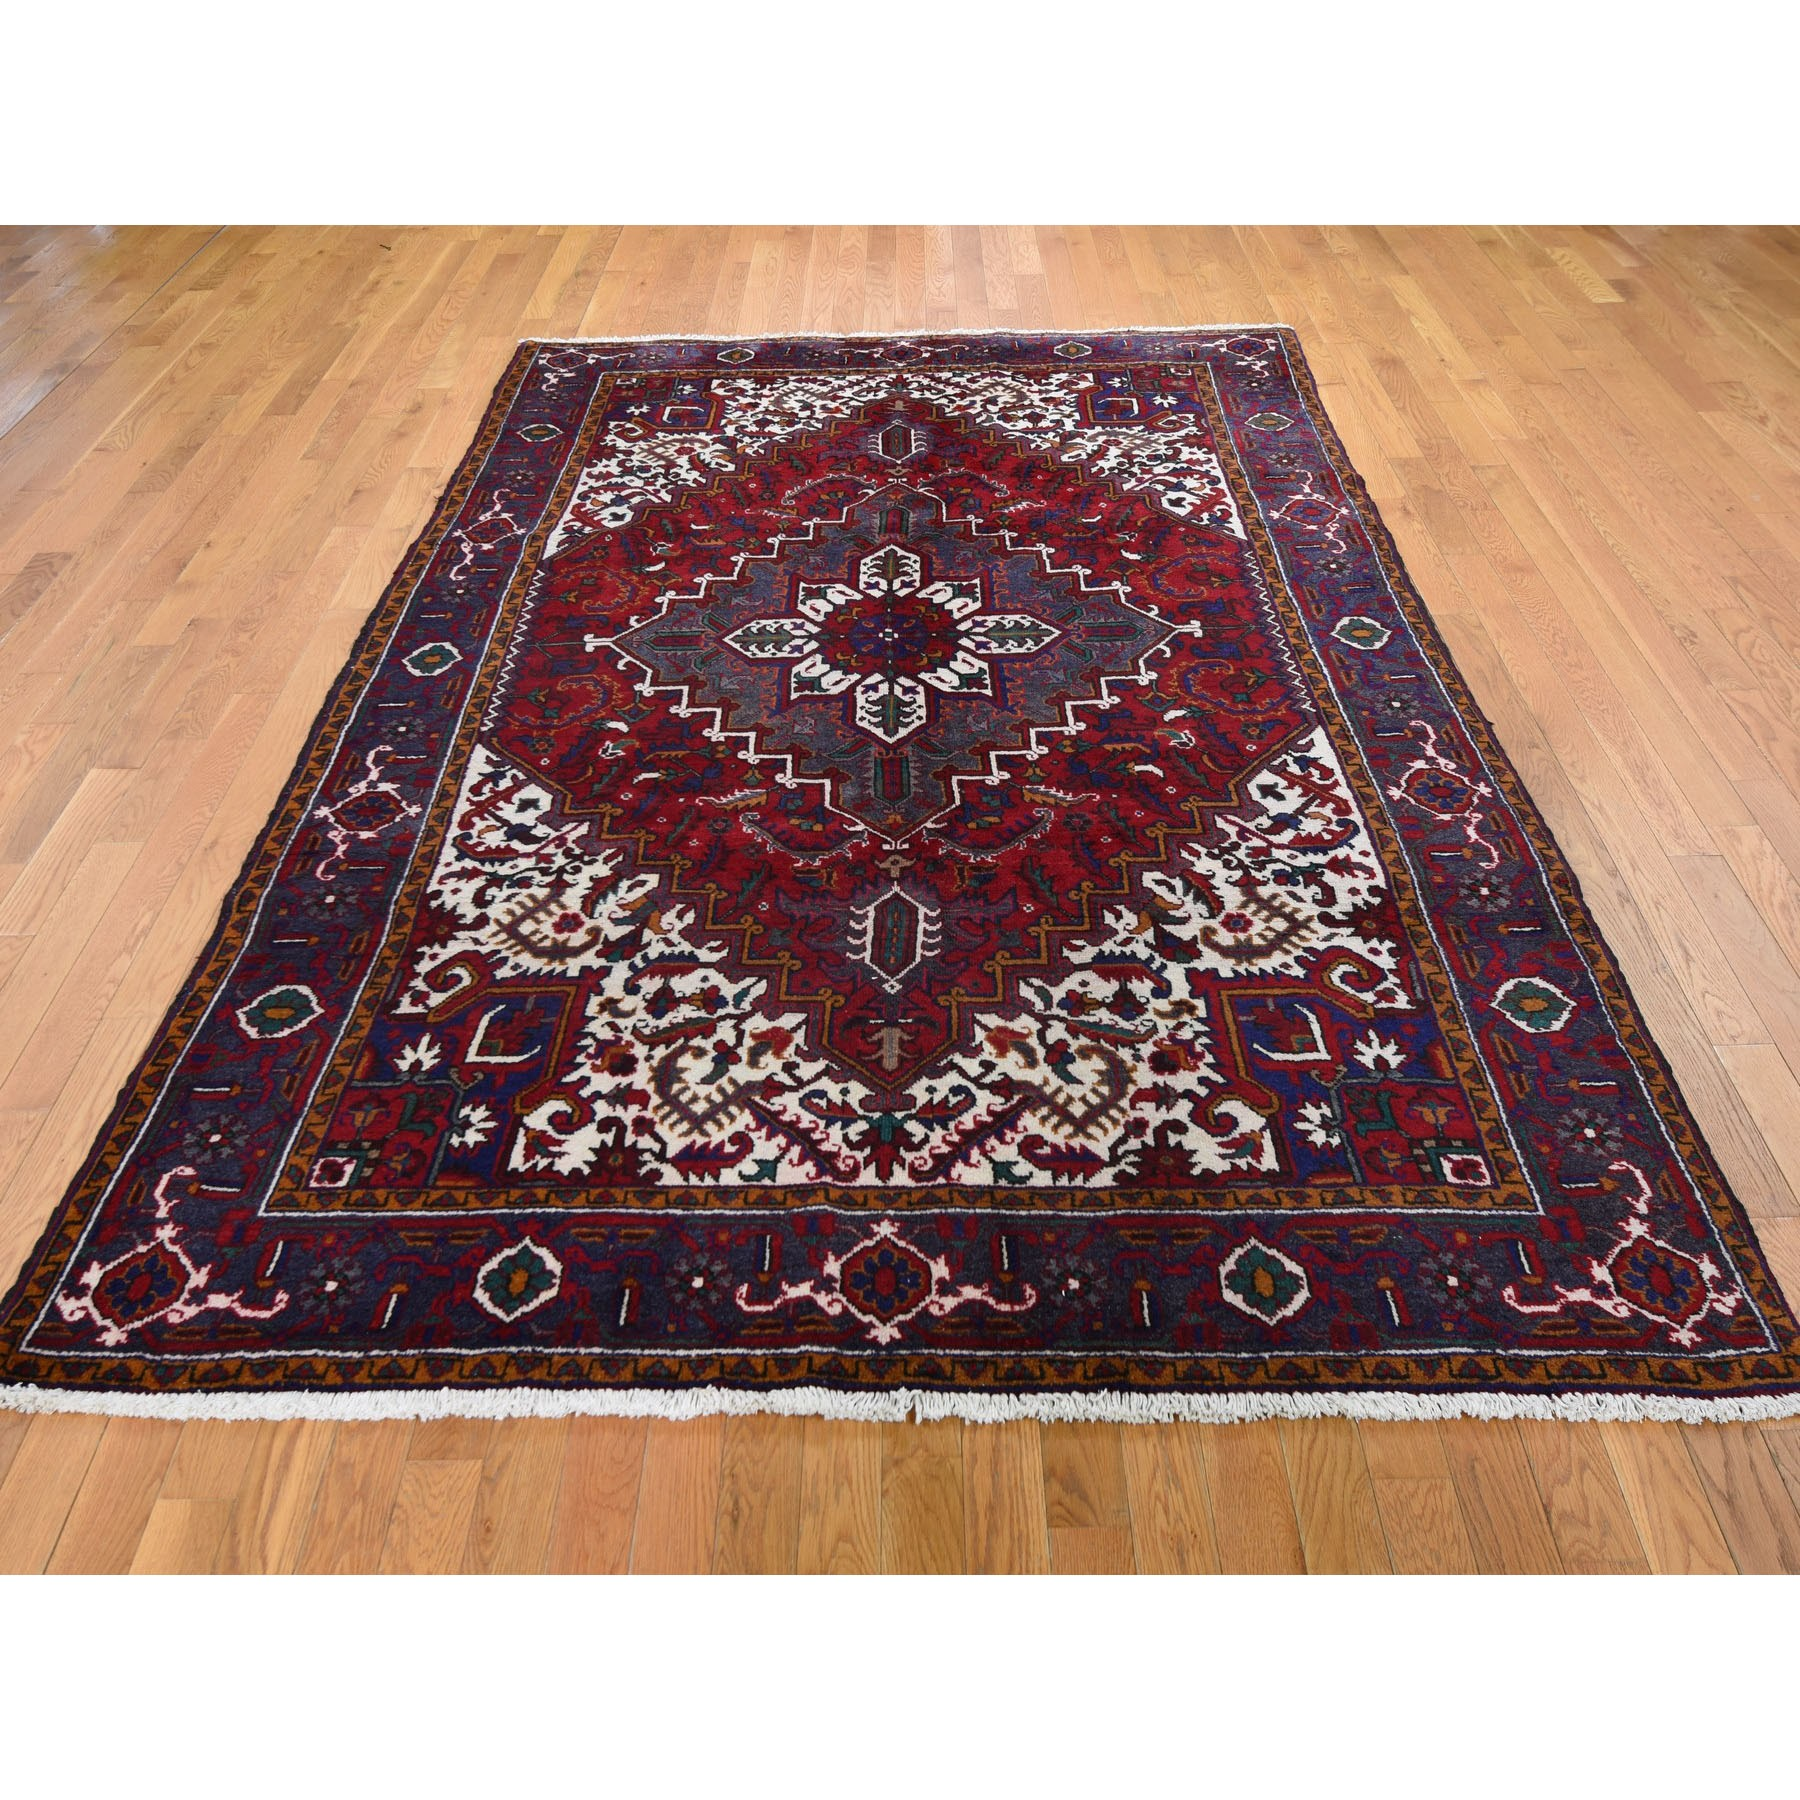 "6'6""x9'5"" Red Semi Antique Persian Heriz Geometric Design Thick and Plush Hand Knotted Oriental Rug"